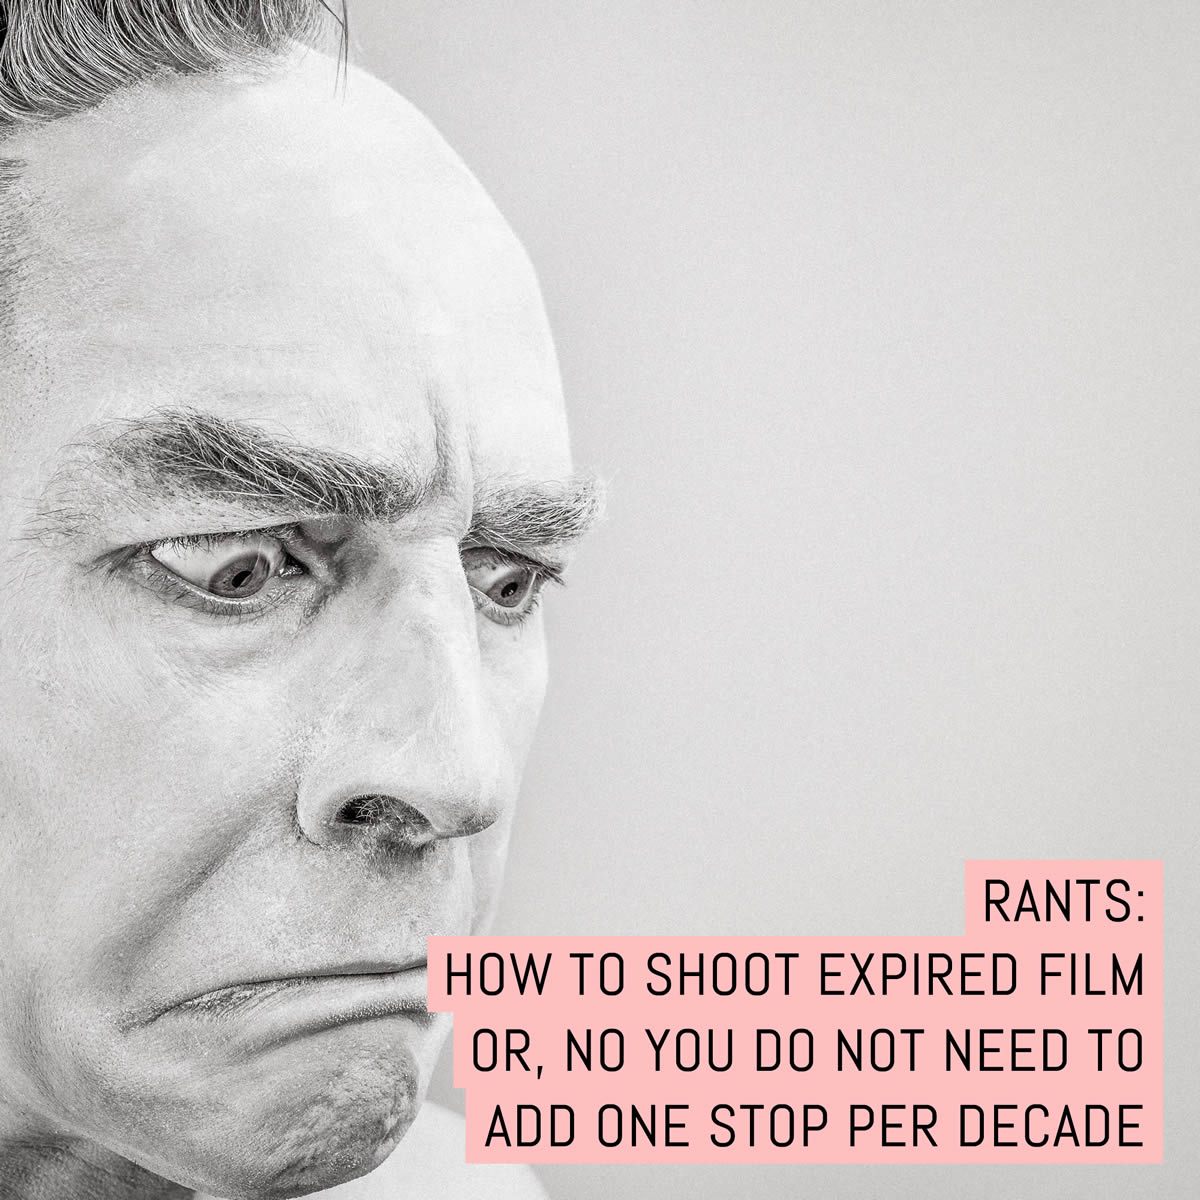 Rants: How to shoot expired film or, no you do not need to add one stop per decade